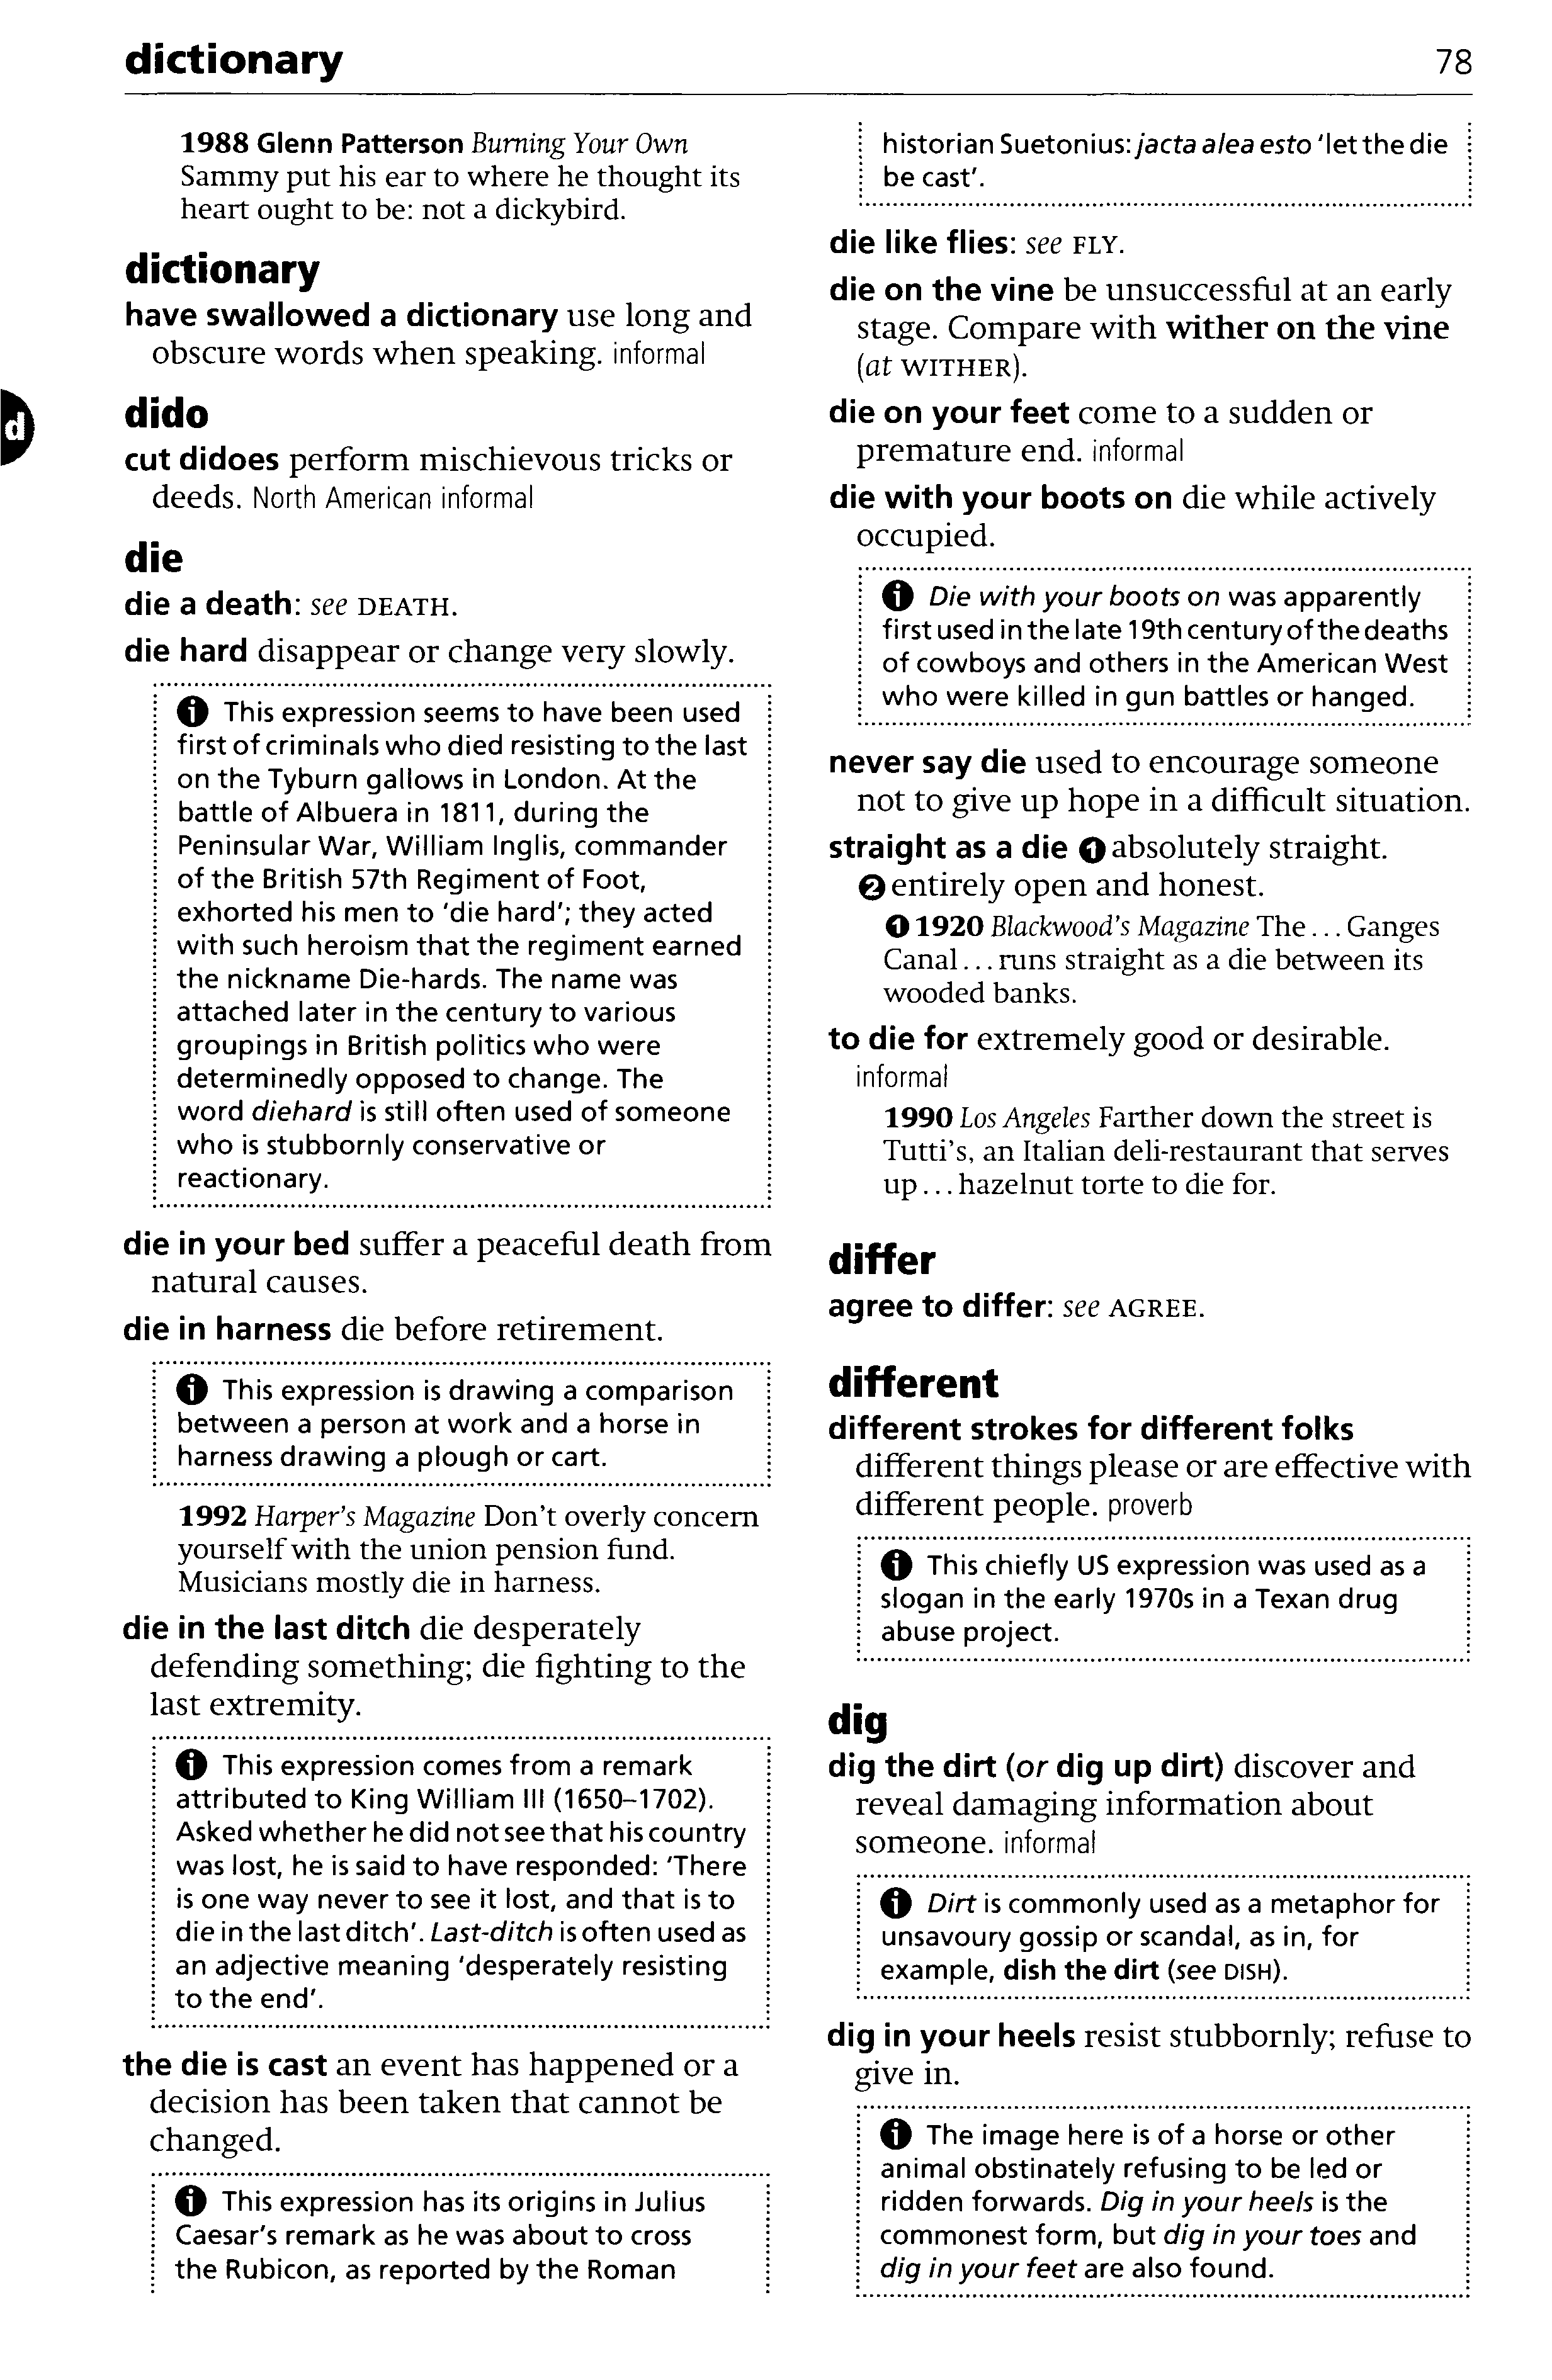 sammy anchor text meaning